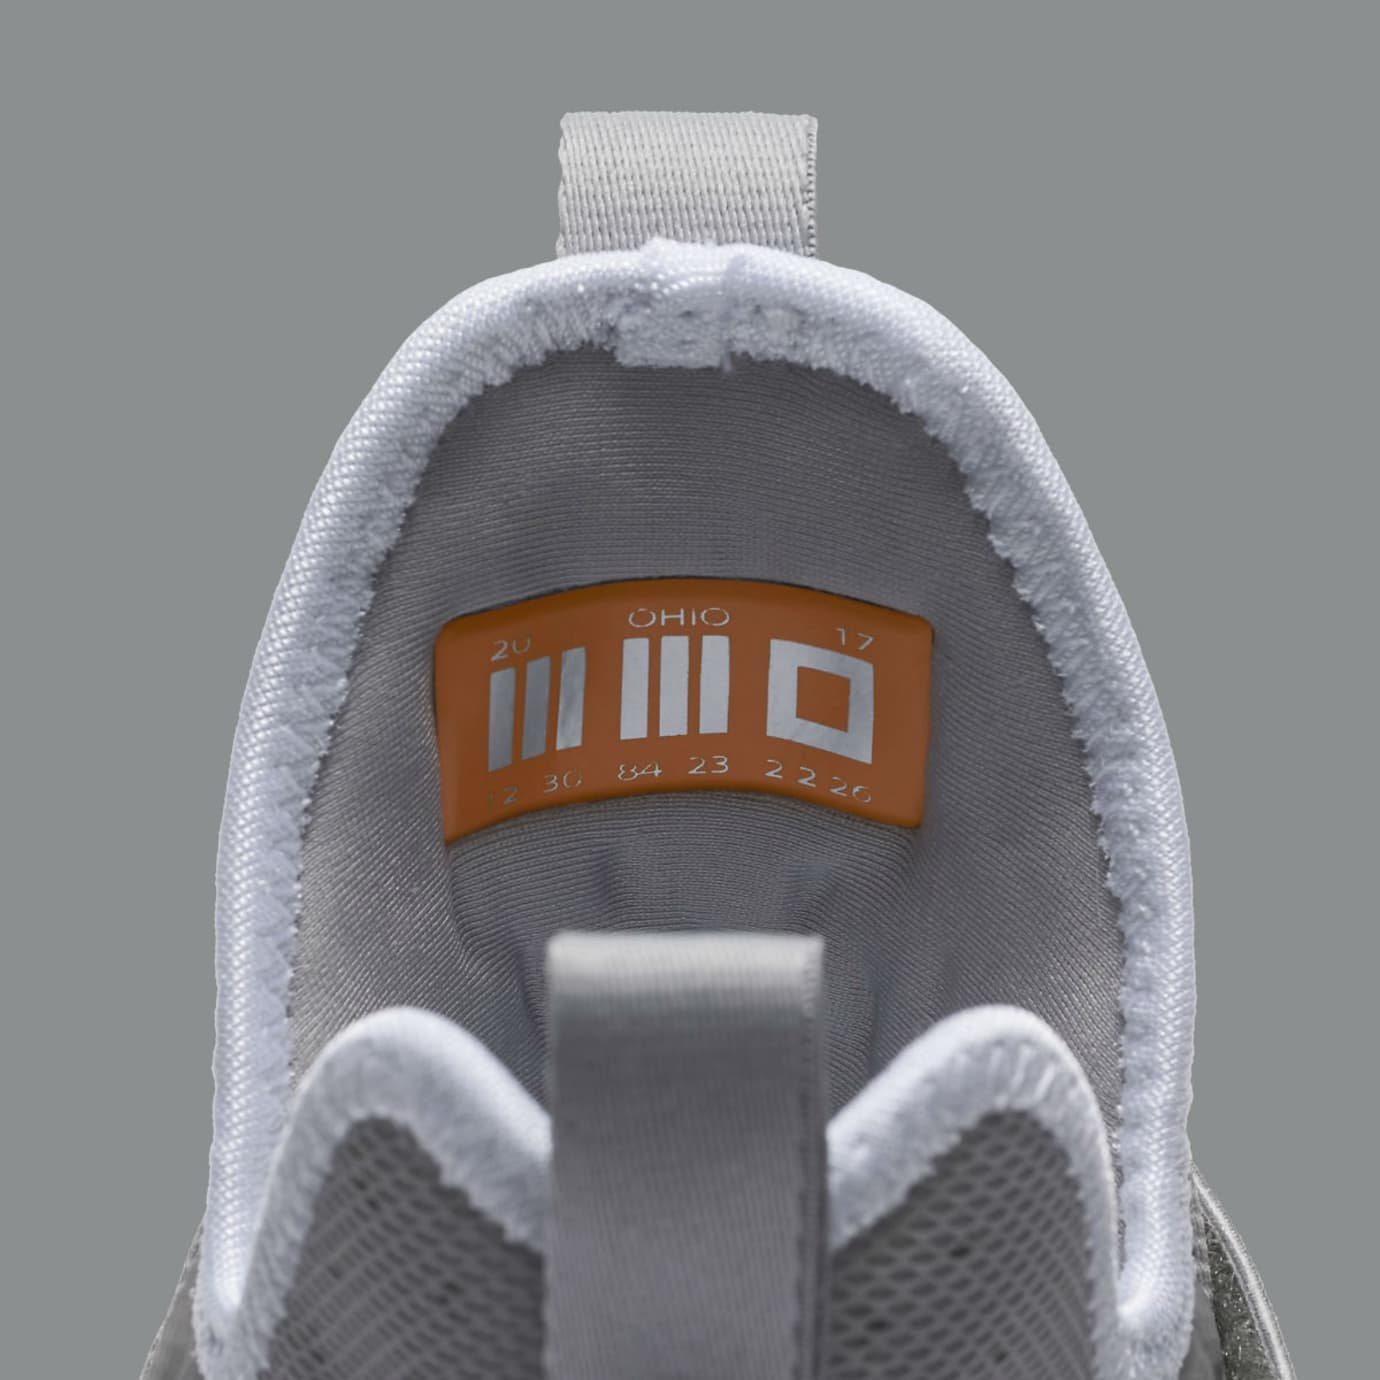 Nike LeBron 14 Mag McFly Release Date Tongue 852405-005